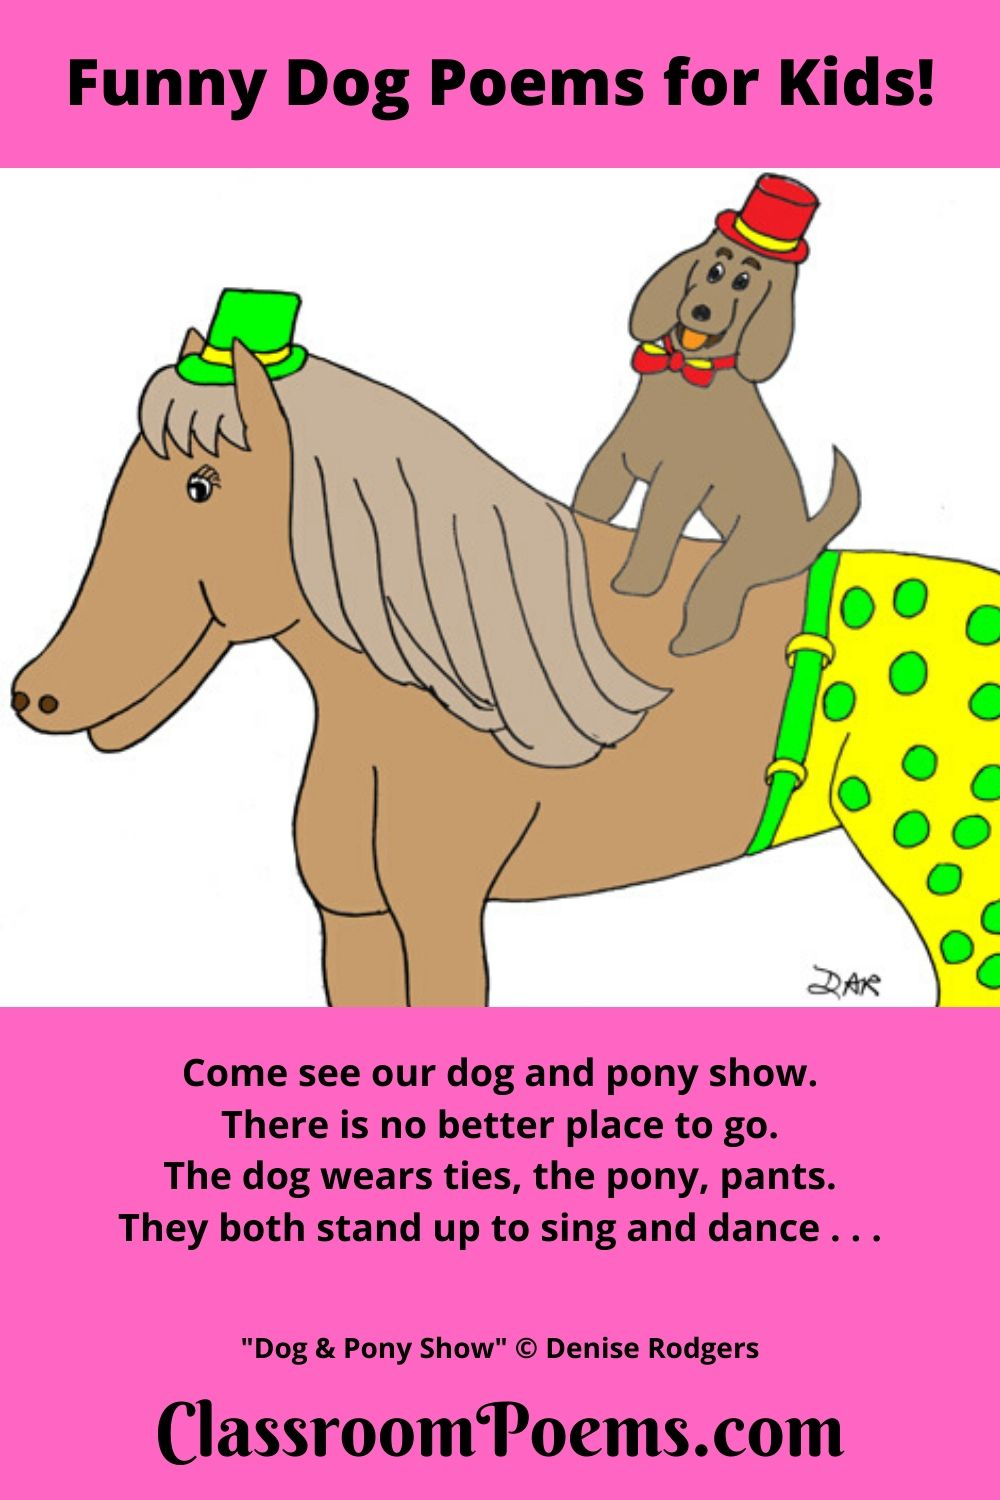 Dog and Pony Show poem by Denise Rodgers on Classroompoems.com.